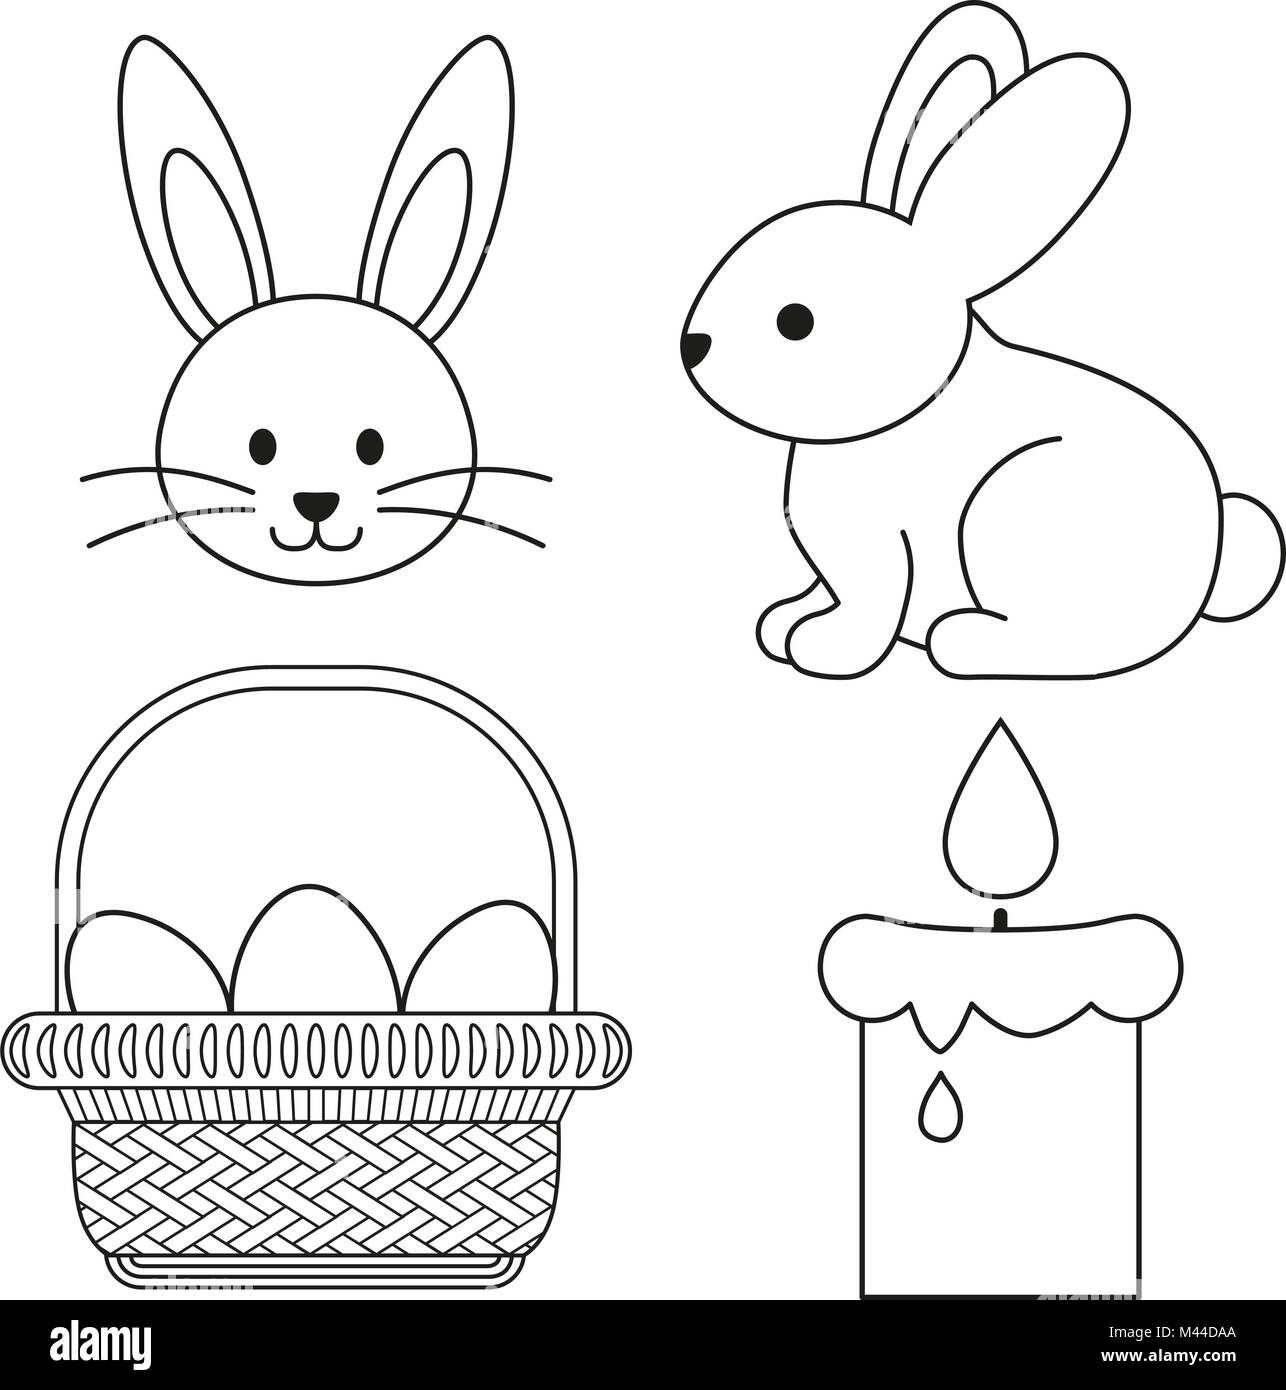 Line Art Easter Bunny : Bunny black and white stock photos images alamy